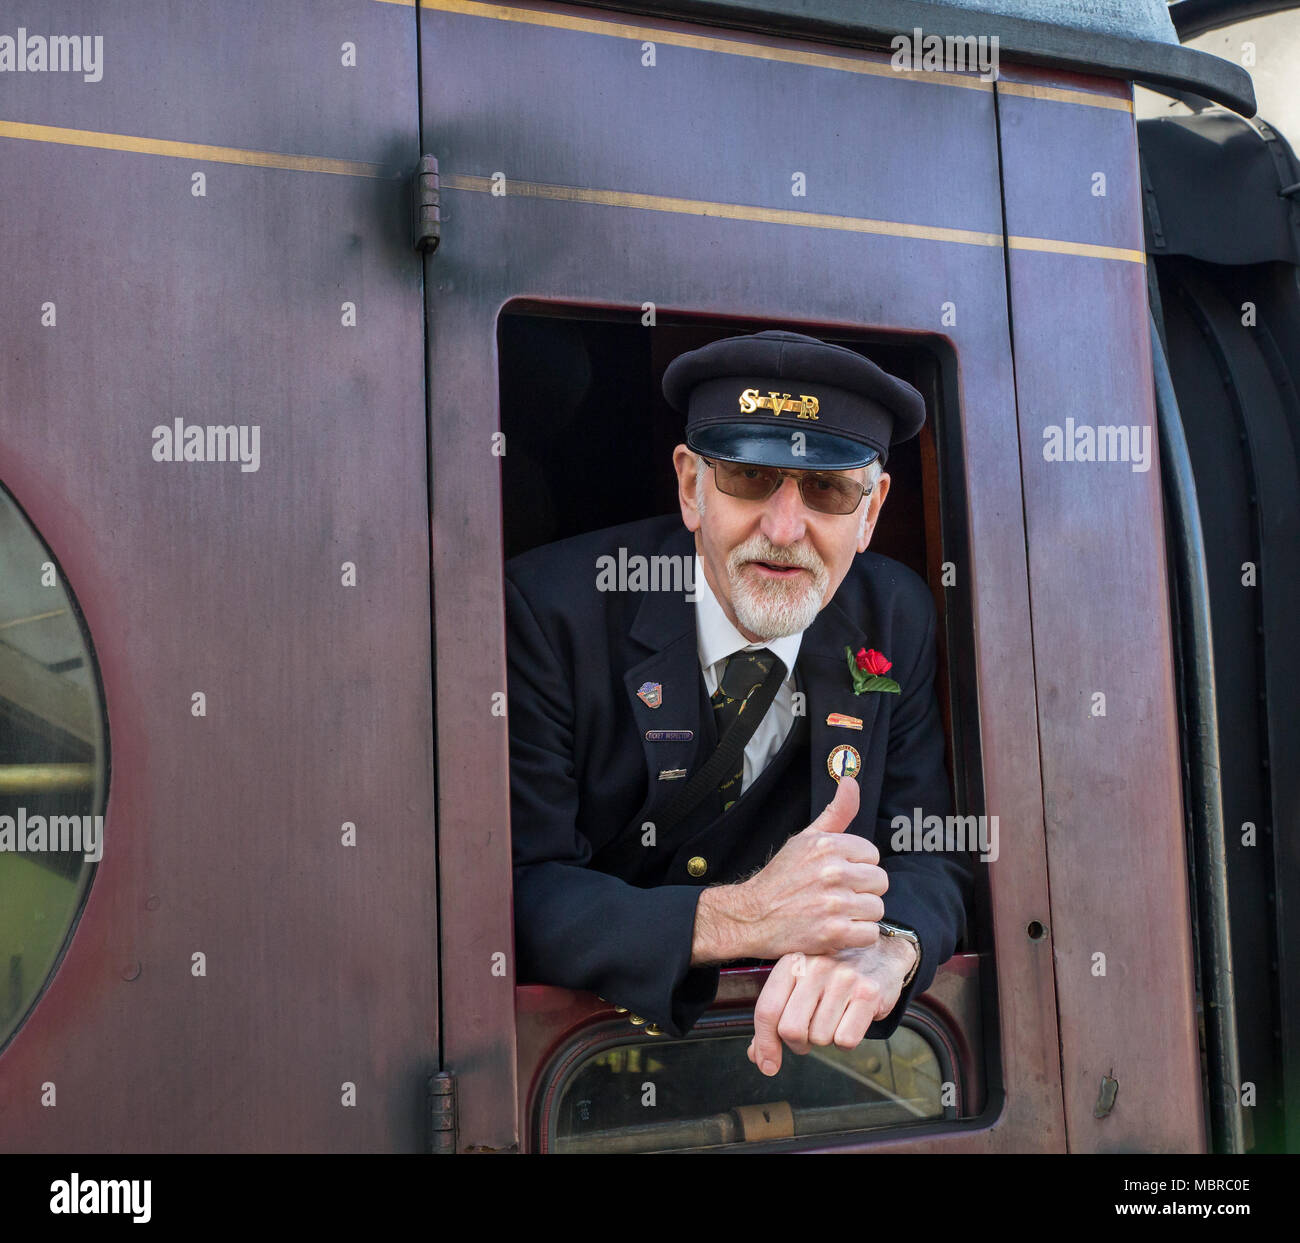 Close up of jolly SVR guard, in official cap, captured as he leans out of passing carriage giving a happy 'thumbs up' to poised platform photographer. - Stock Image